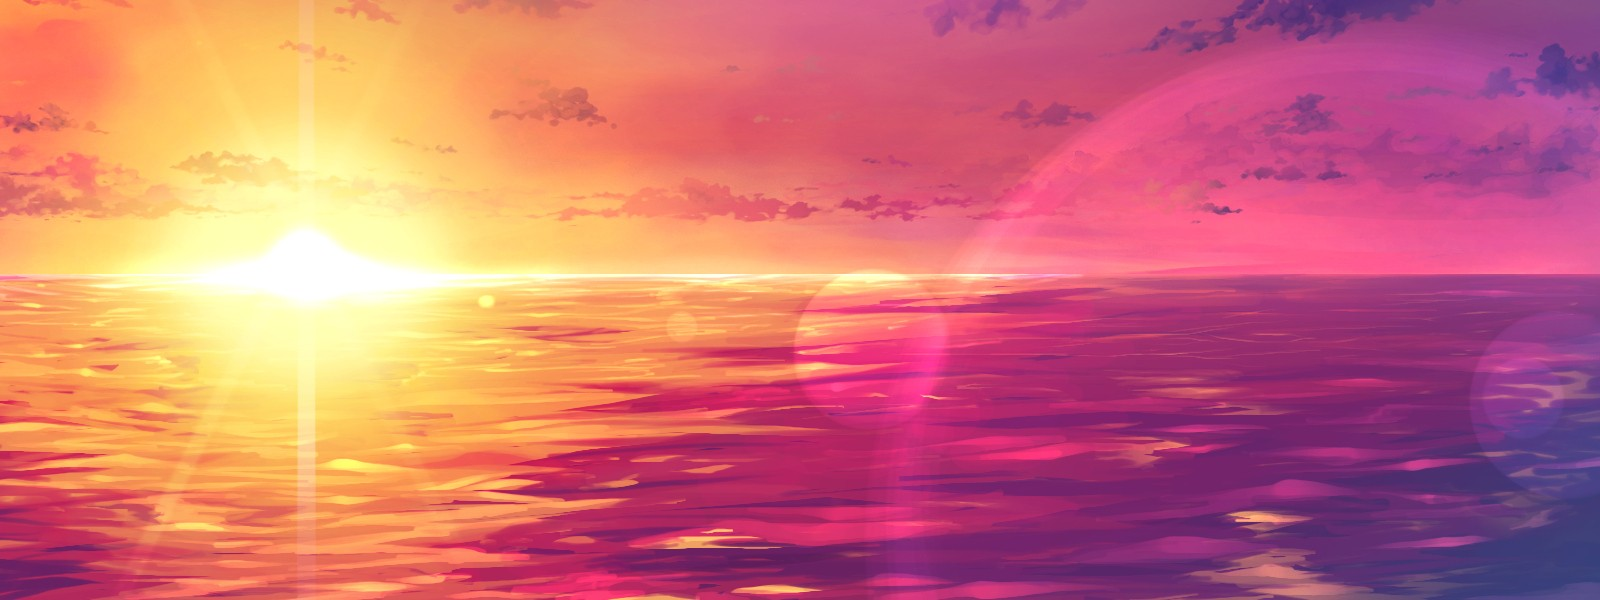 Free download Pink Sunset Wallpaper HD [1600x600] for your Desktop